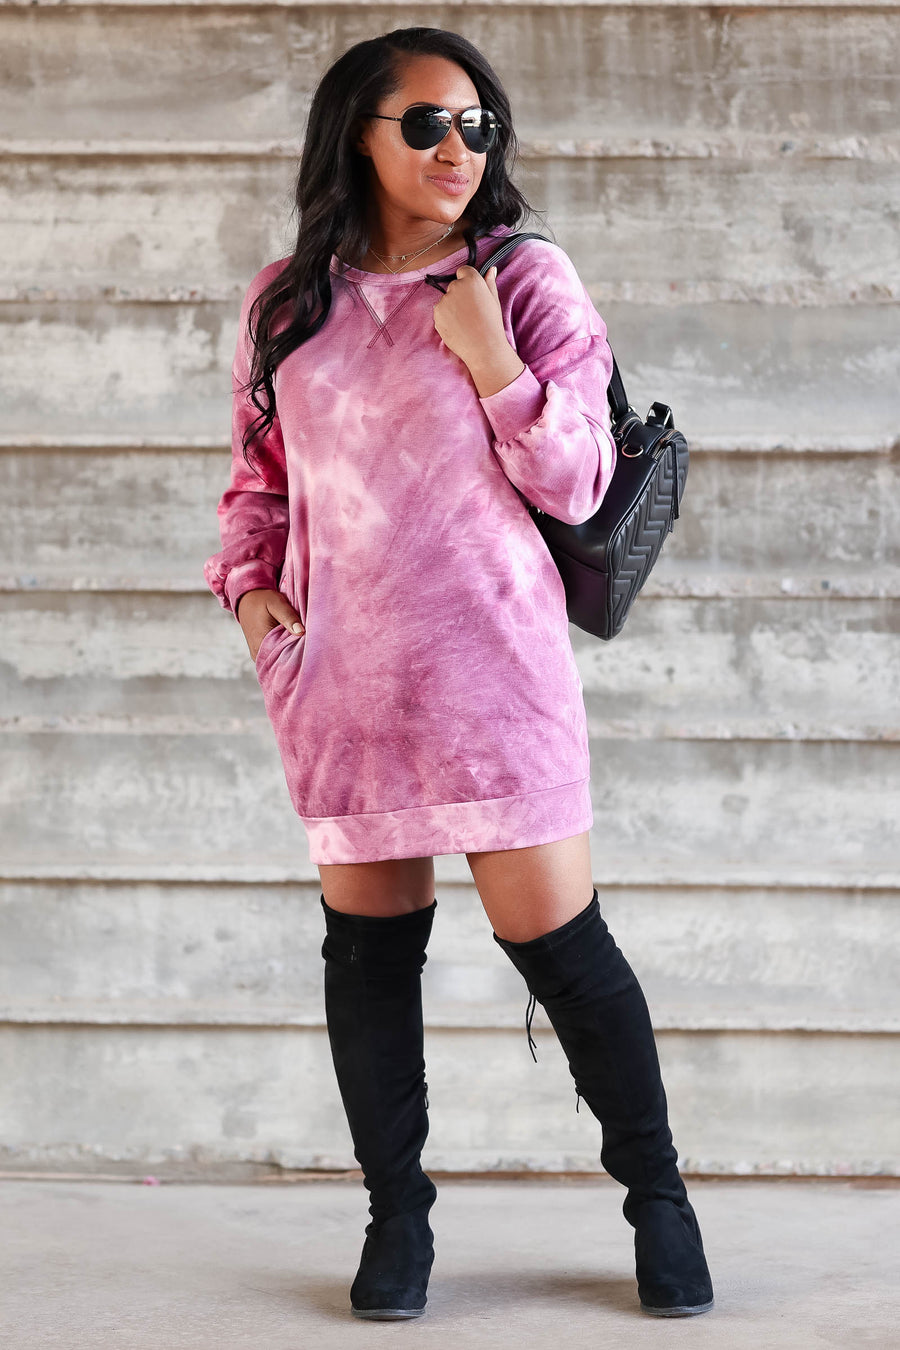 Head In The Clouds Sweatshirt Dress - Magenta women trendy tie dye sweatshirt dress closet candy front